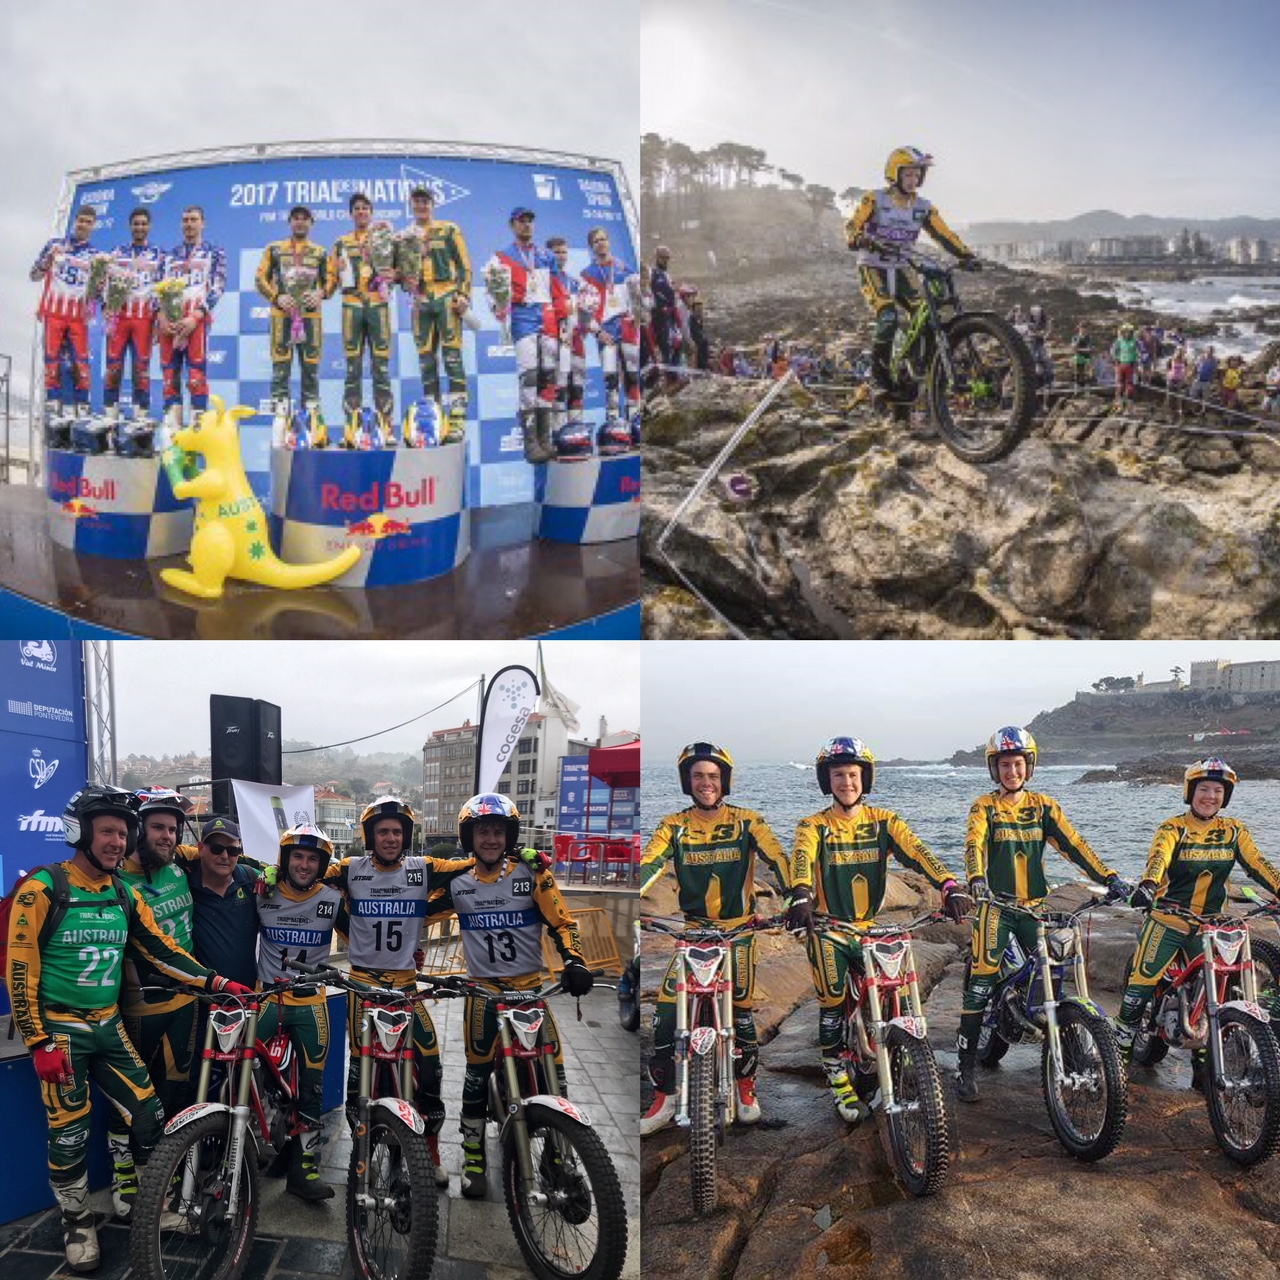 Trial des Nations - Photo Gallery